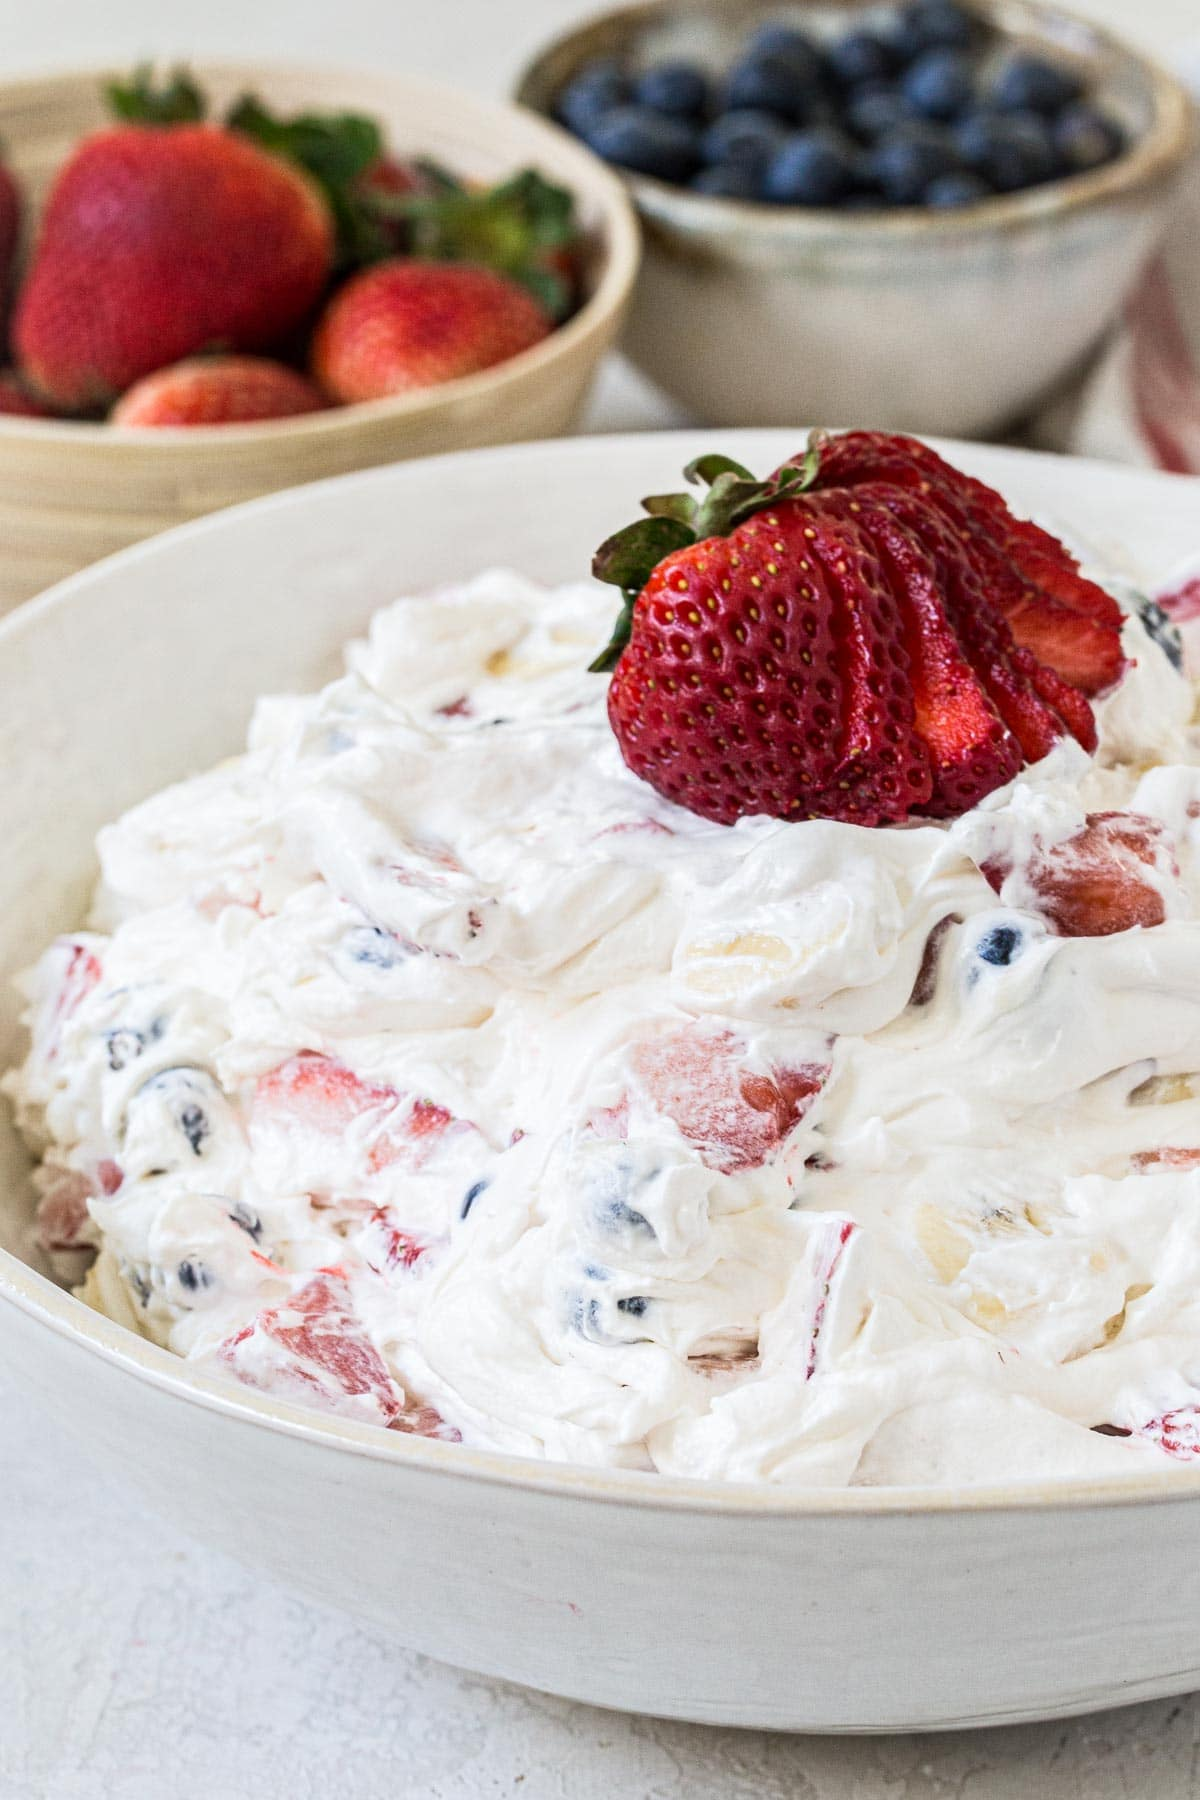 Mixed berry cheesecake salad in a white bowl.